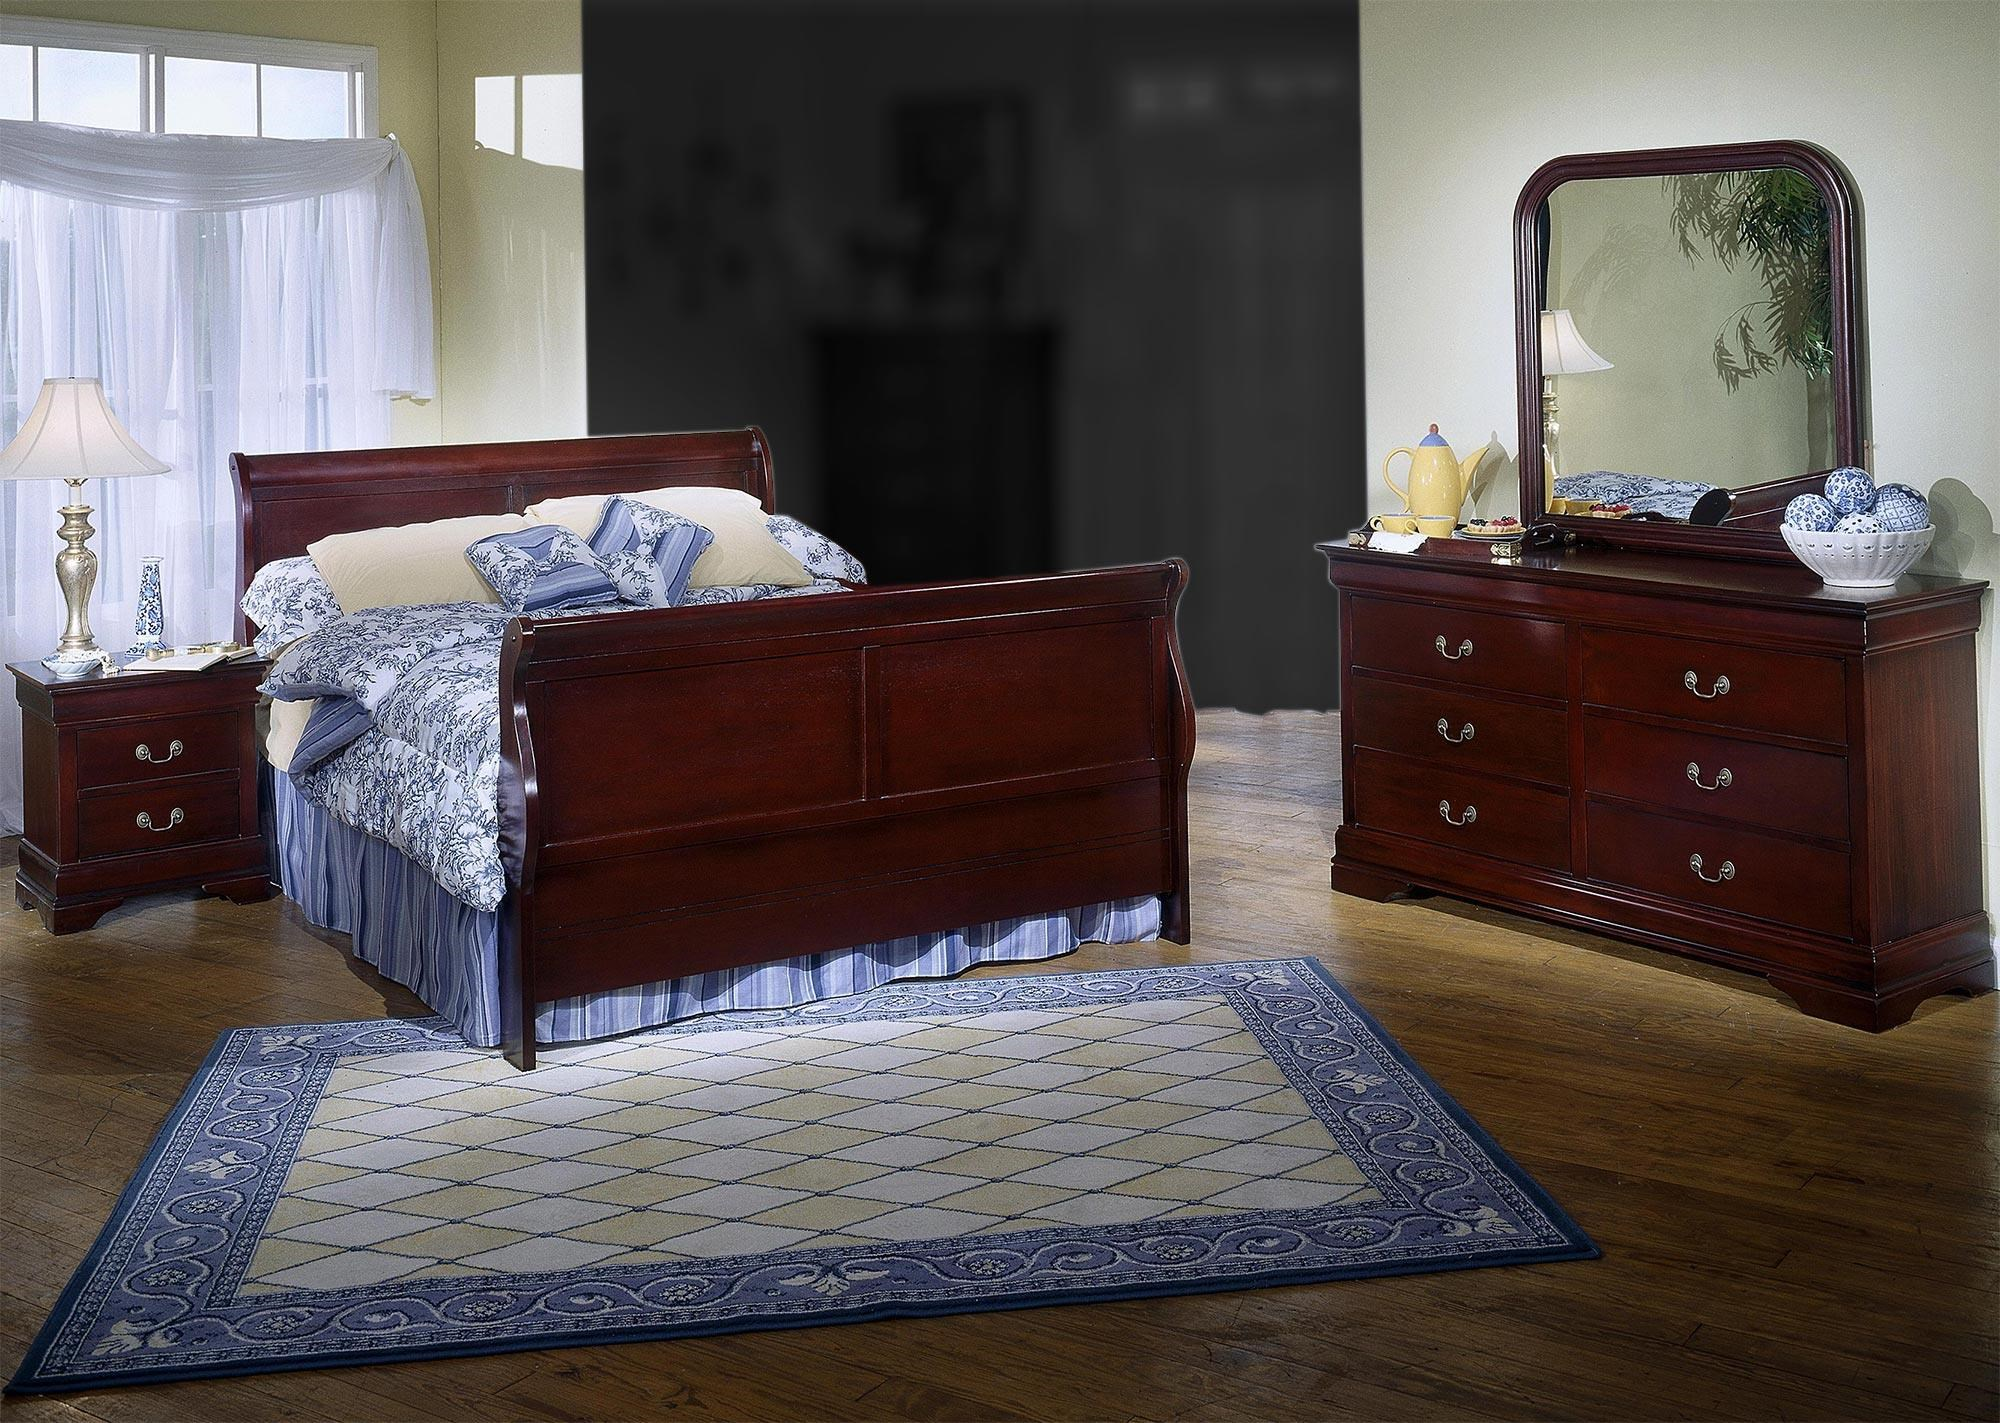 Incroyable Lifestyle Louis Estates4 Piece Queen Bedroom Set